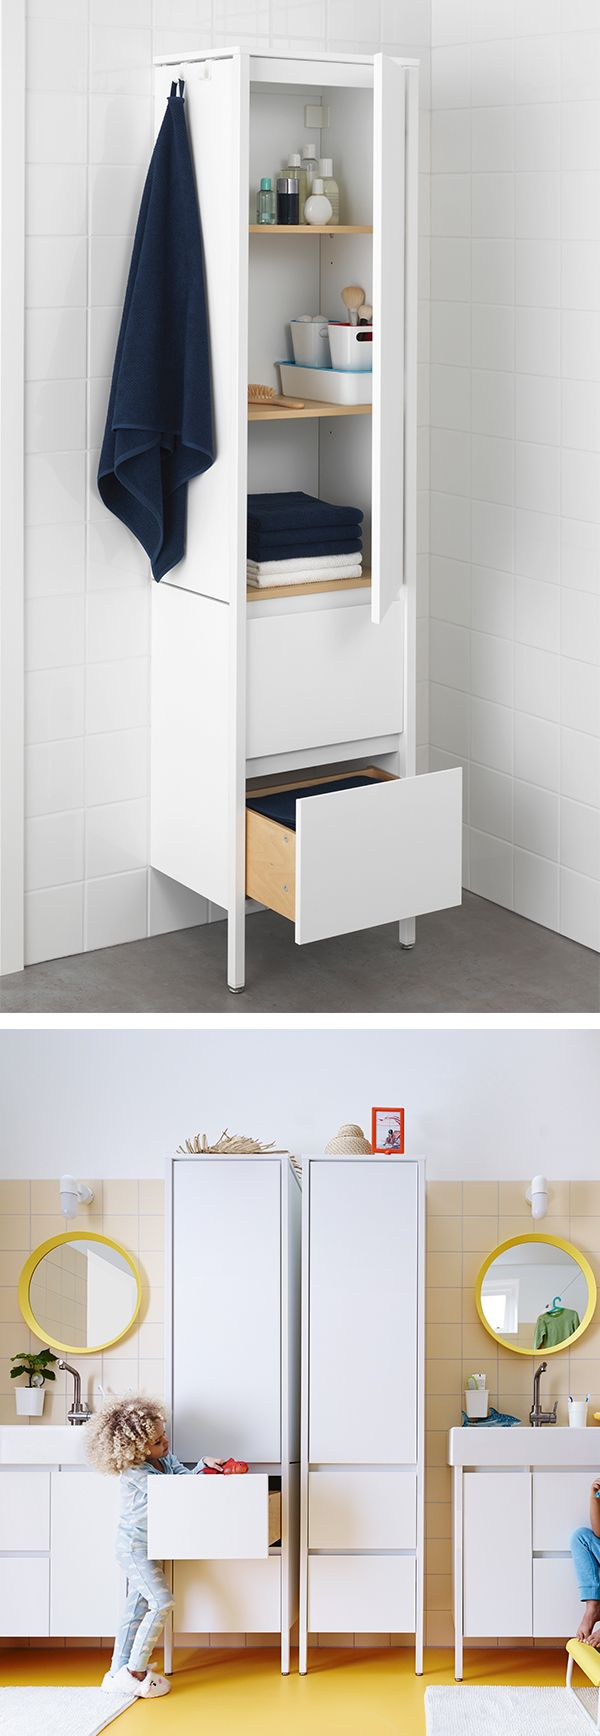 Add extra storage to your bathroom without adding extra space! The IKEA YDDINGEN high cabinet has hooks for towels or other things that you want to have within easy reach.